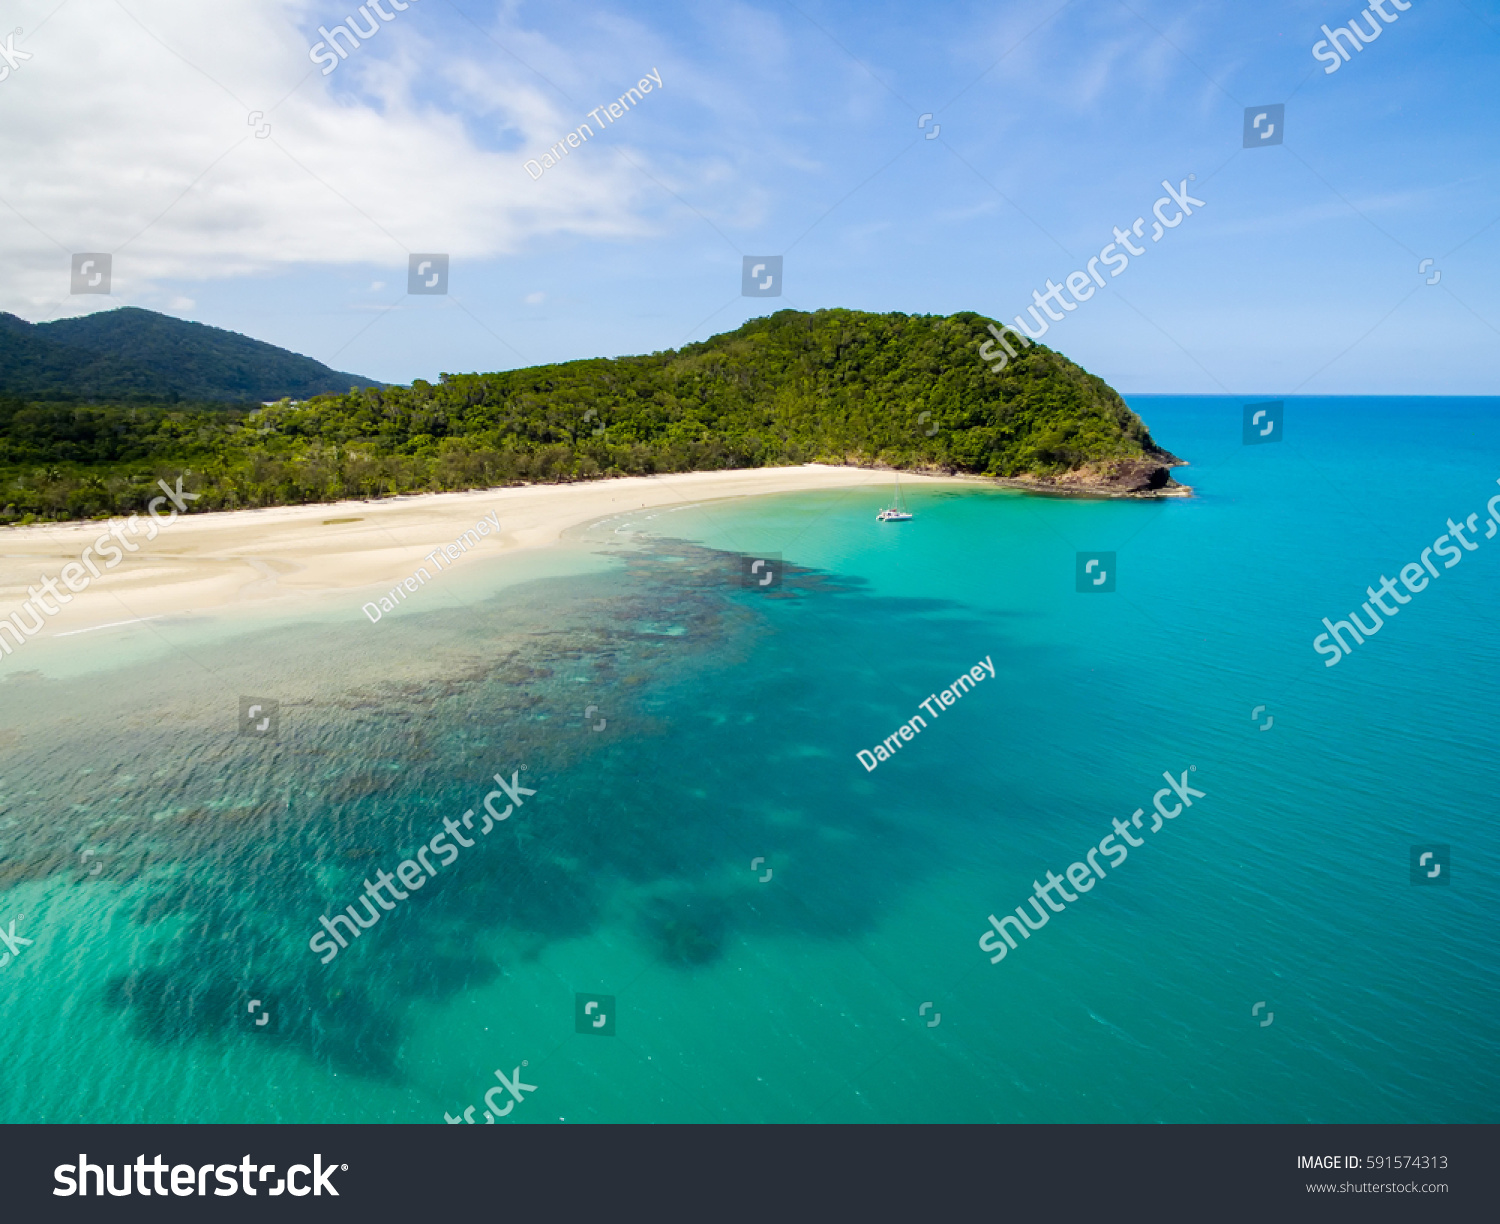 Myall Beach Cape Tribulation, Aerial View Myall Beach Cape Tribulation Stock Photo 591574313 ...